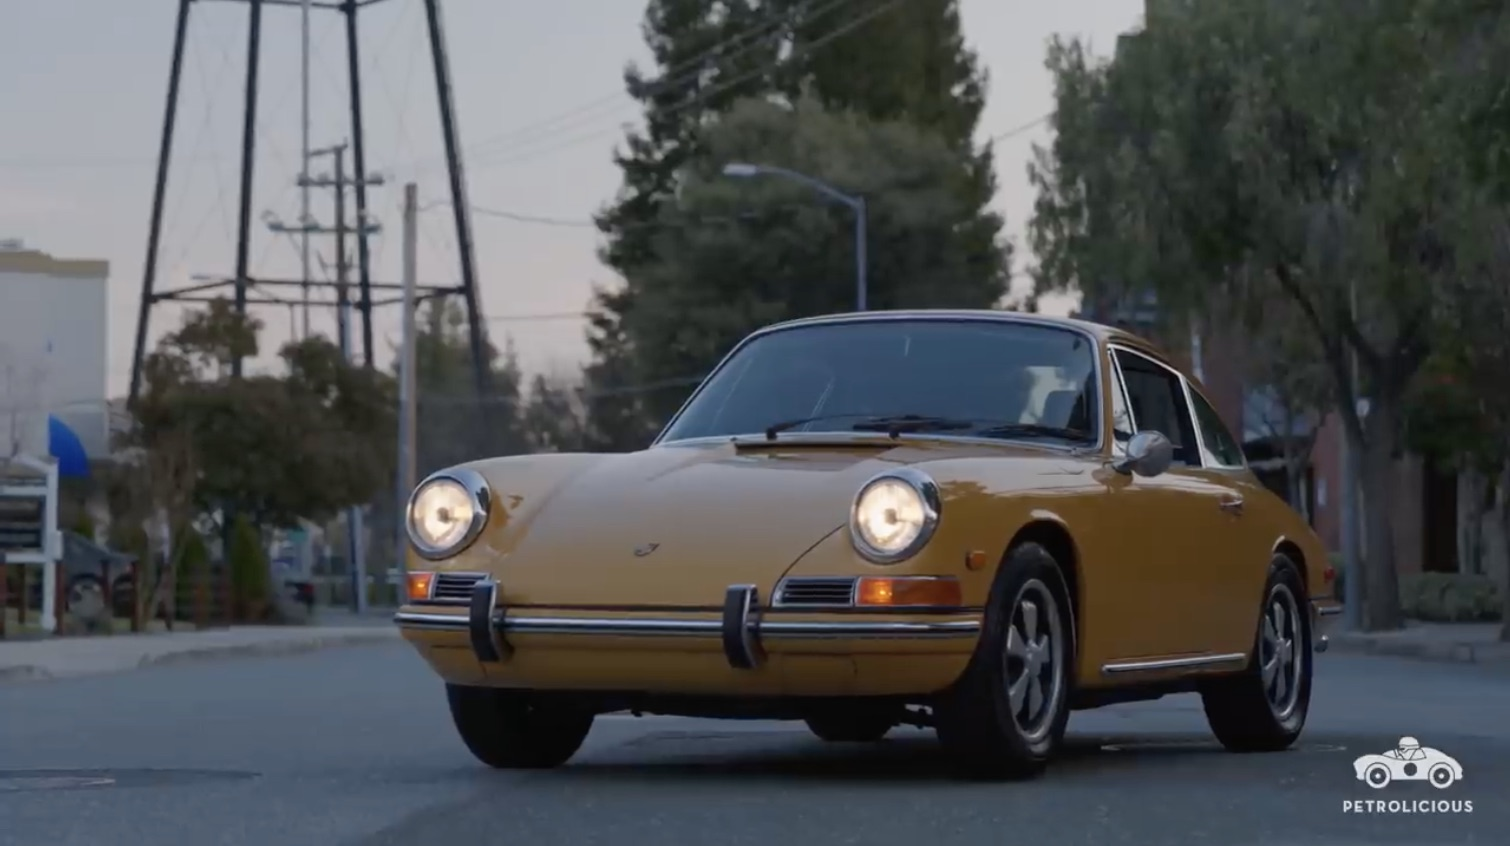 Proper Caretaking: This 1968 Porsche 911 Is Living A Properly Charmed Live!